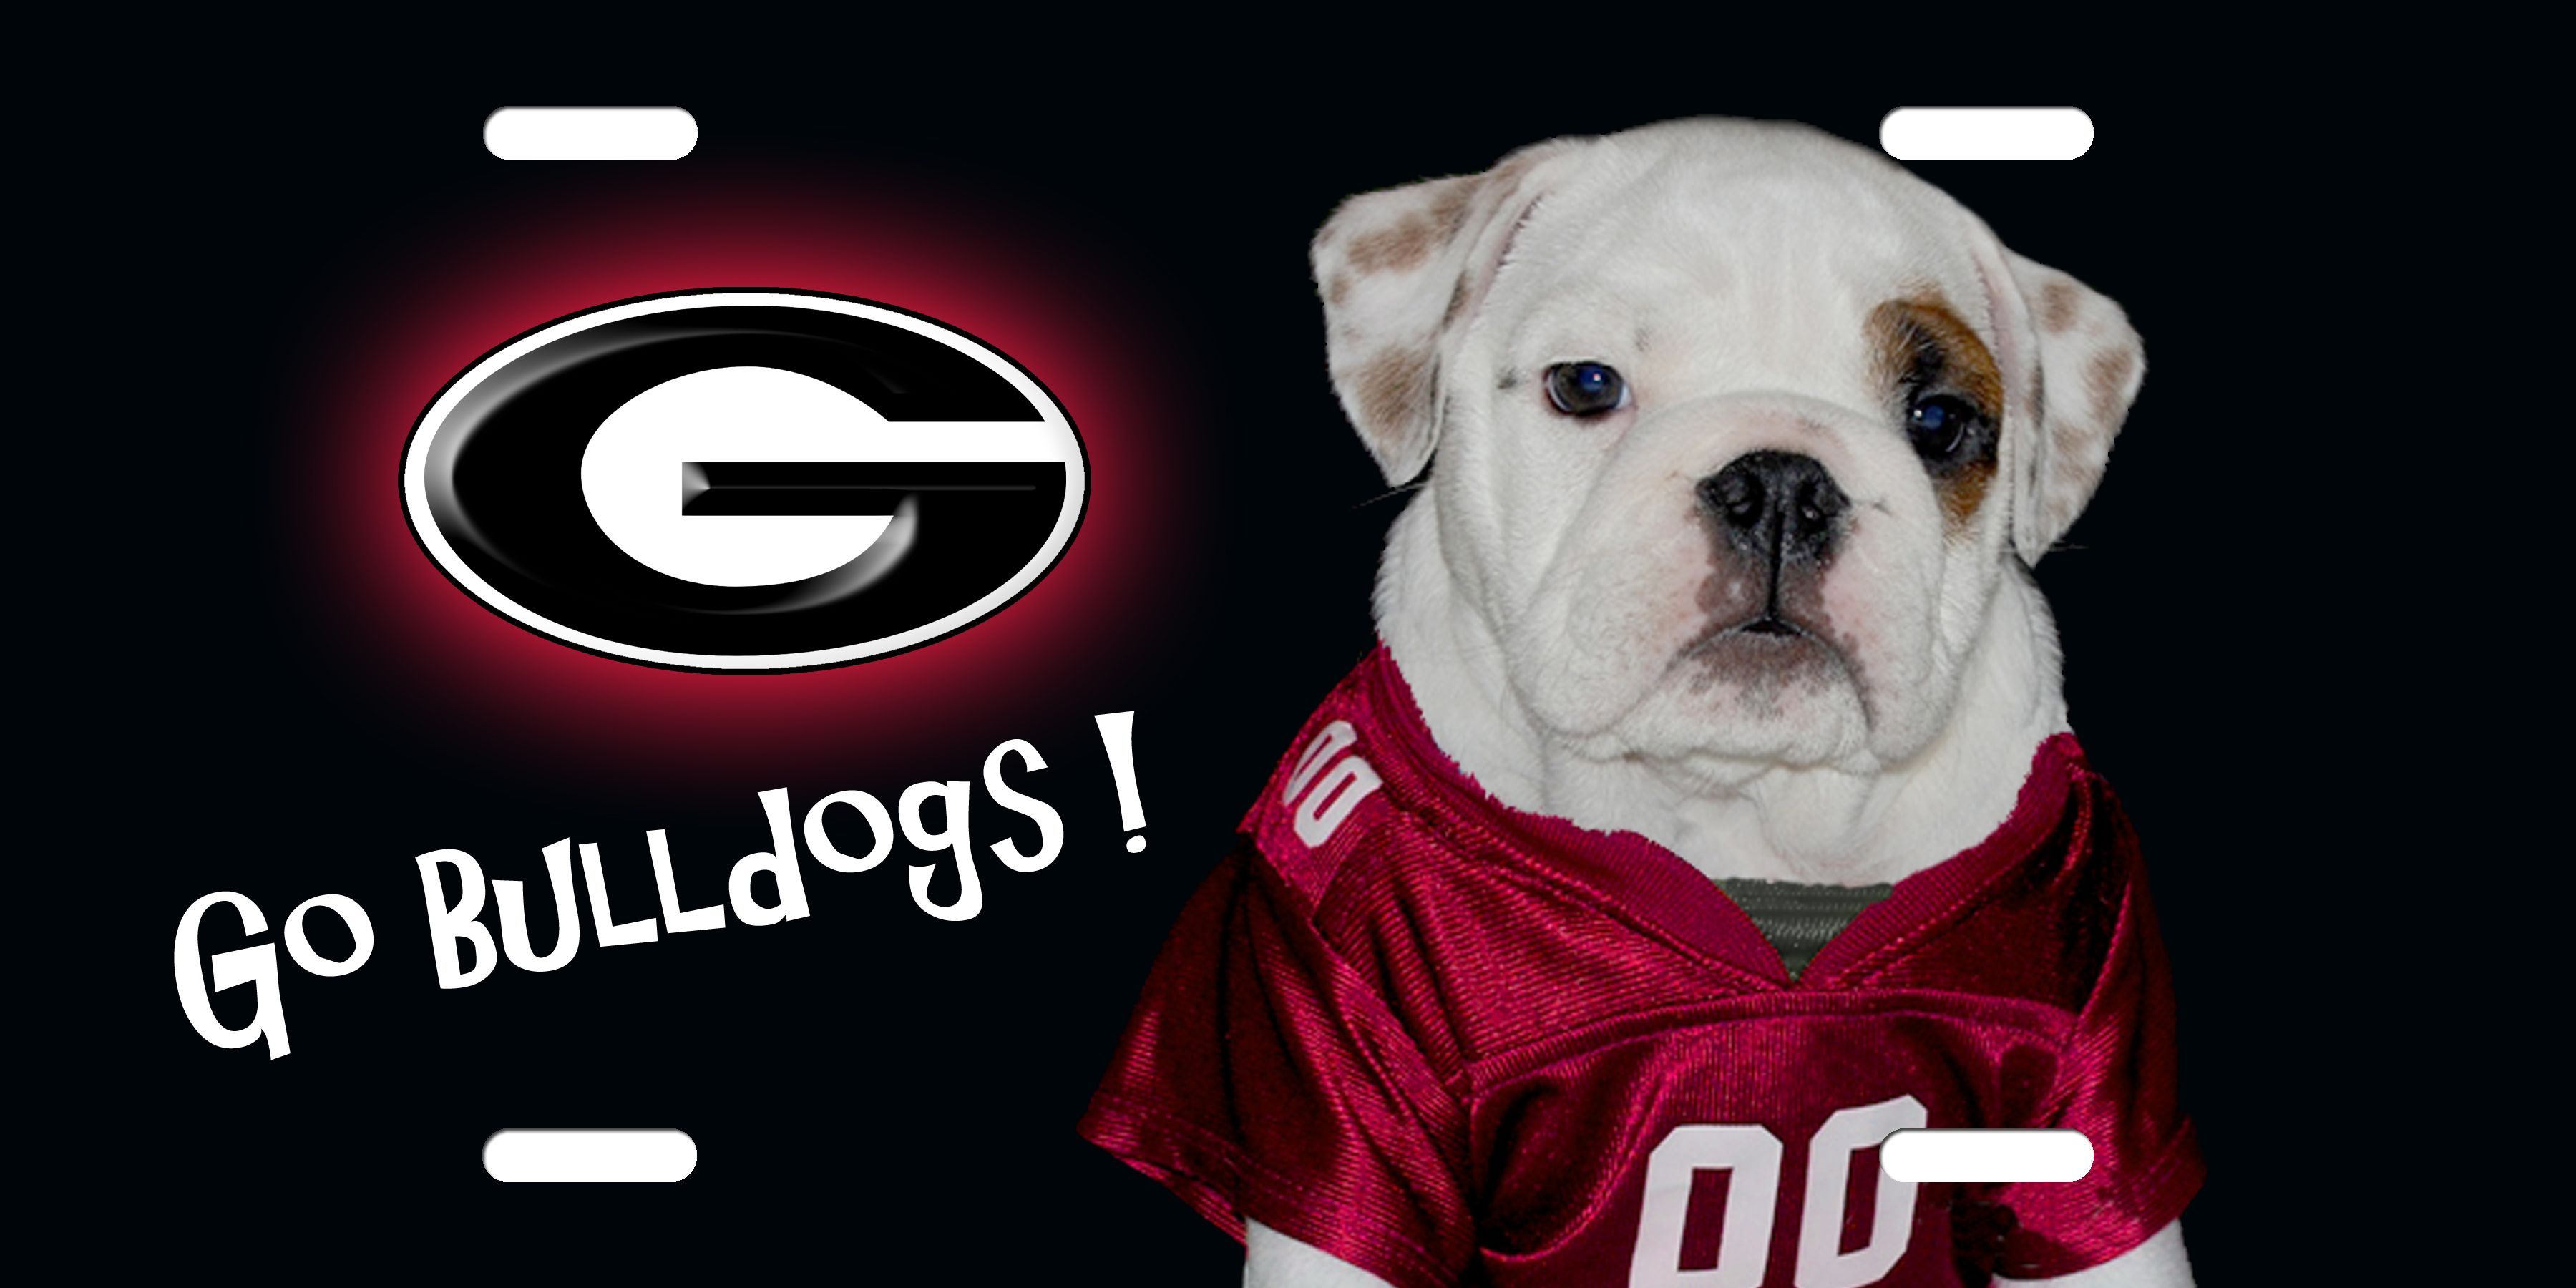 bulldog cars Google Search Bulldog wallpaper